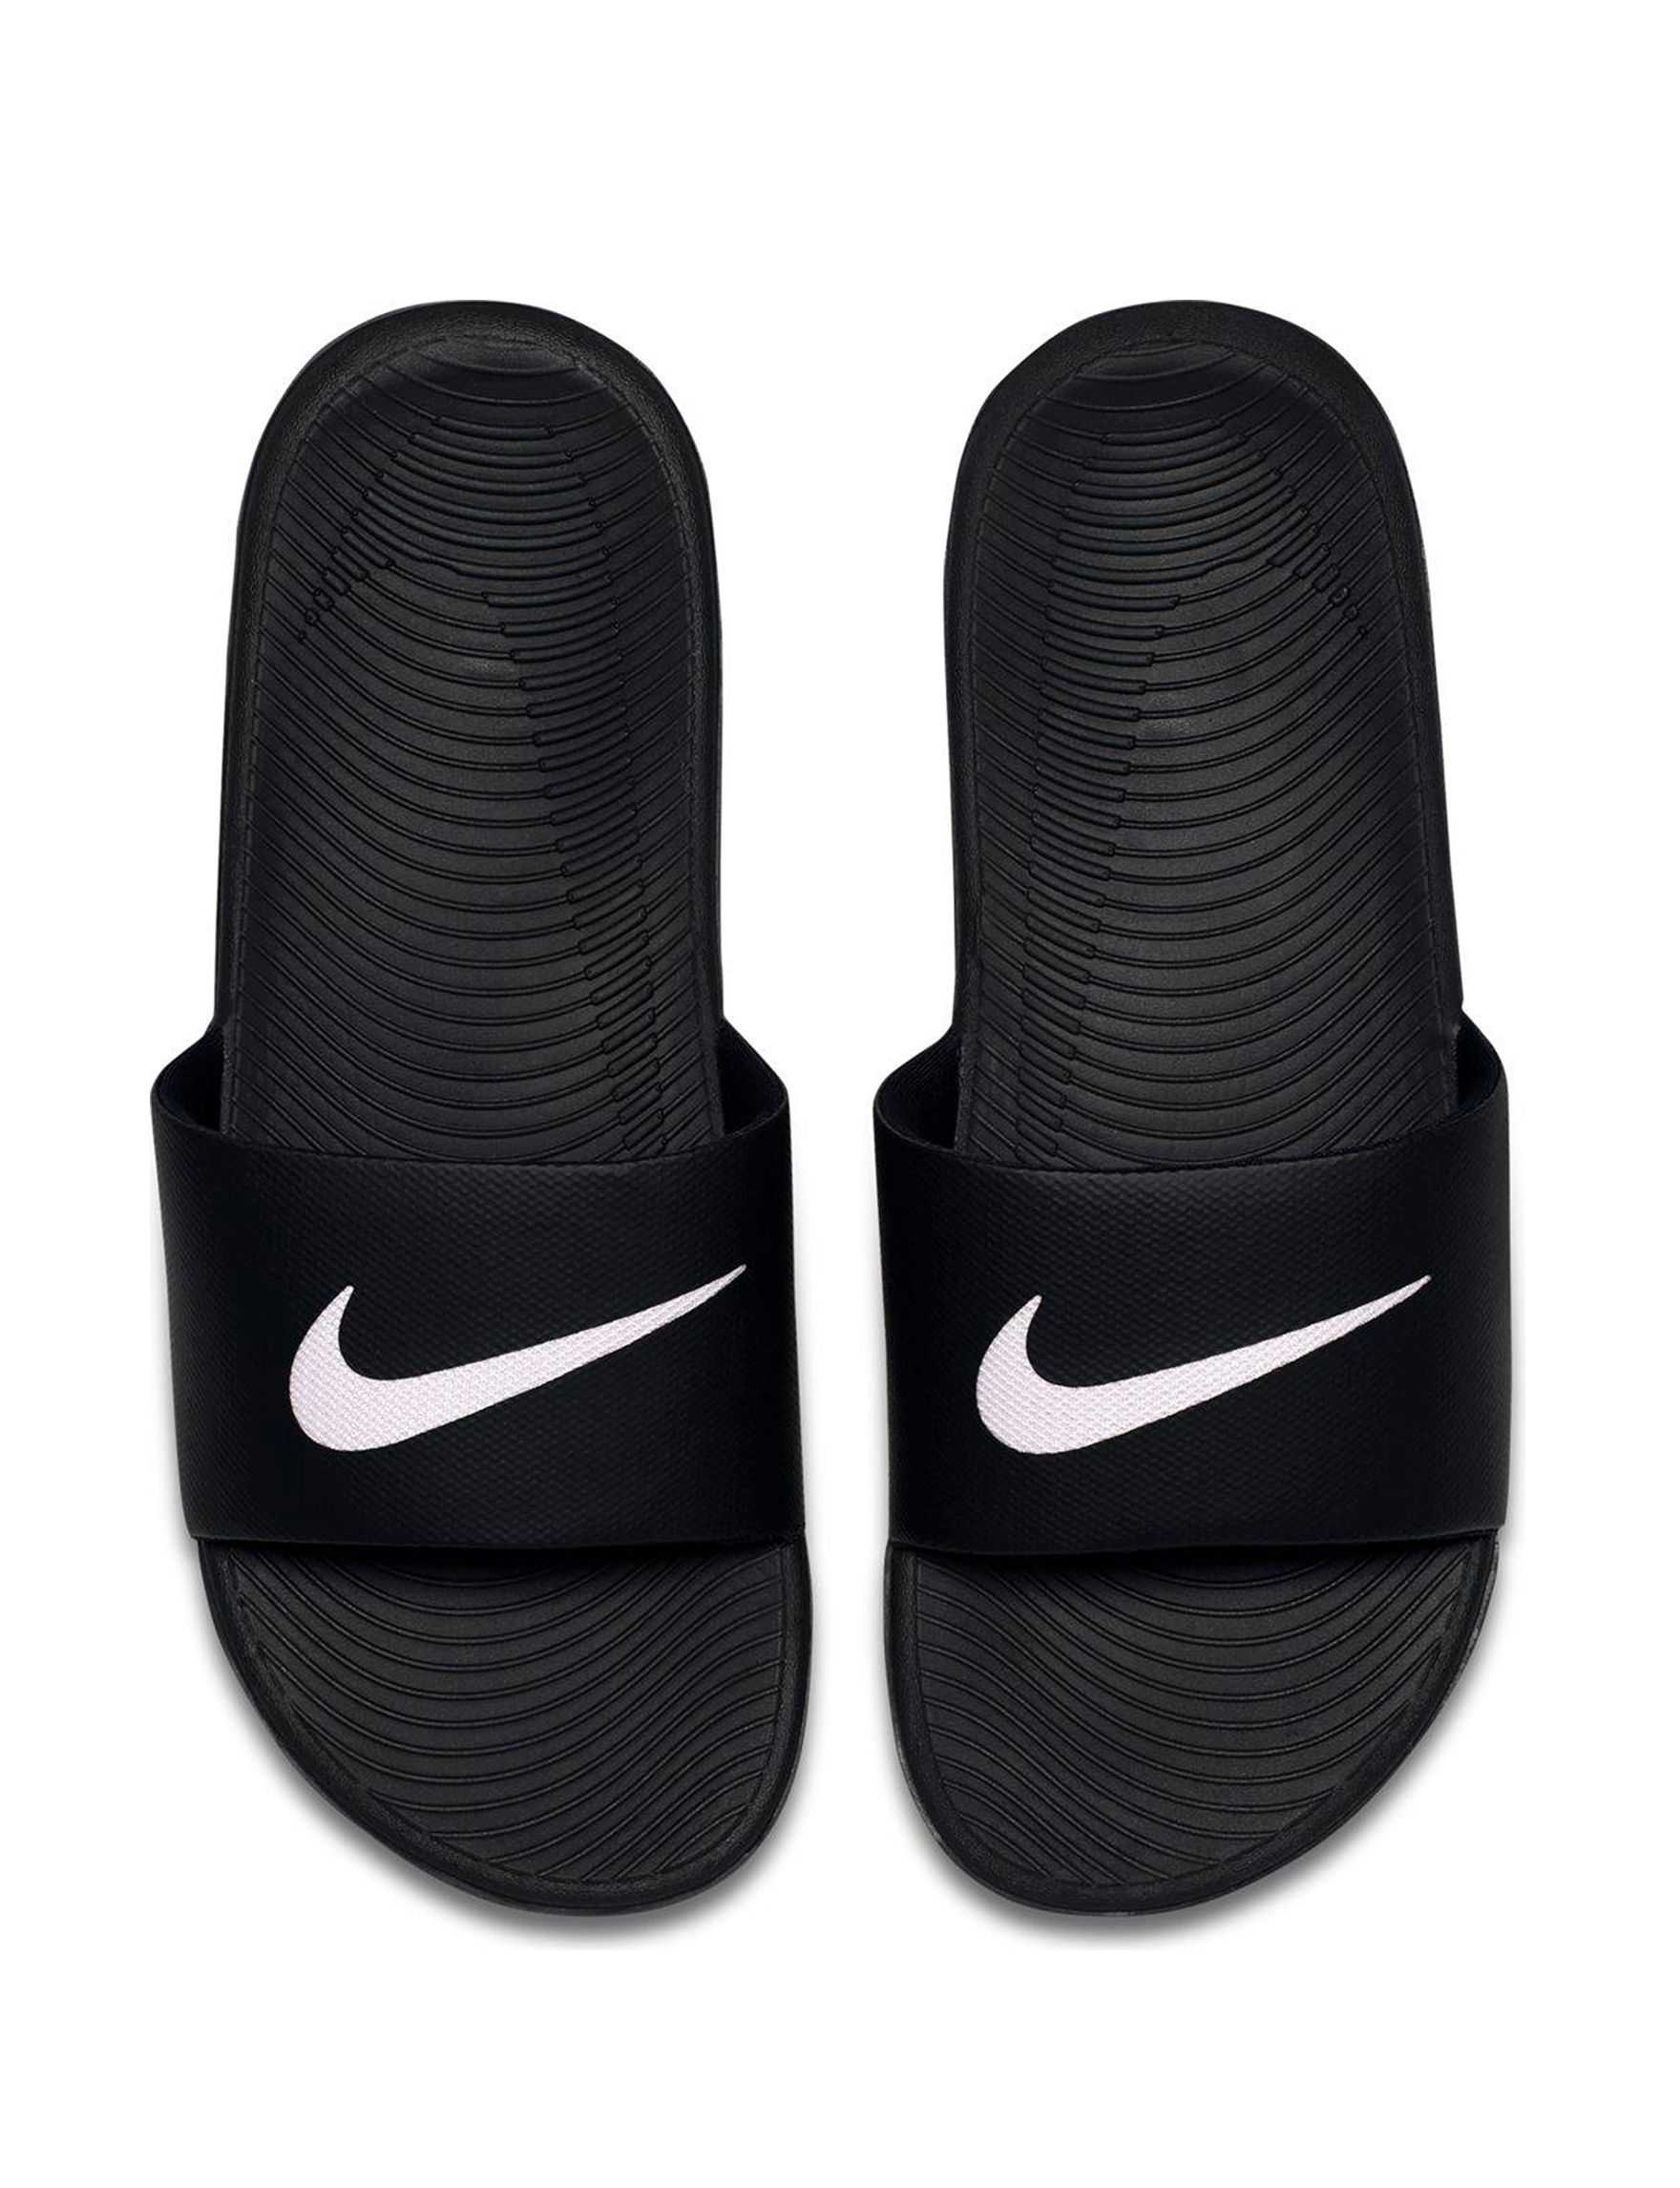 3c36204b4e71 ... Grey UPC 887224436569 product image for Nike Men s Kawa Slide Sandals -  Black   White - 7